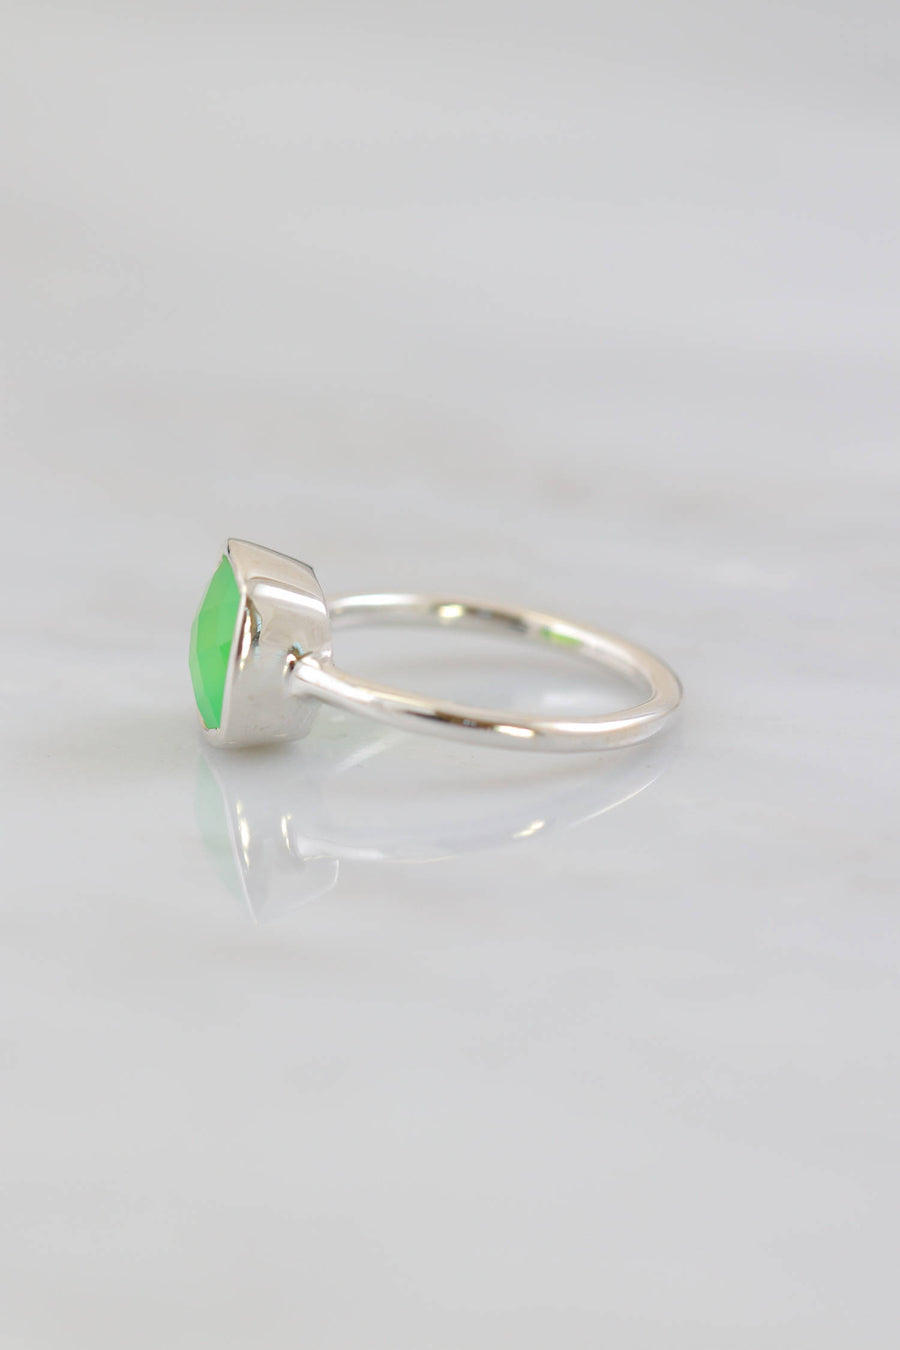 Chrysoprase Ring, Cushion Cut Ring, Sterling Silver Ring, Everyday Ring, Simple ring, Stacking ring, Bezel set ring, Faceted Cushion Ring